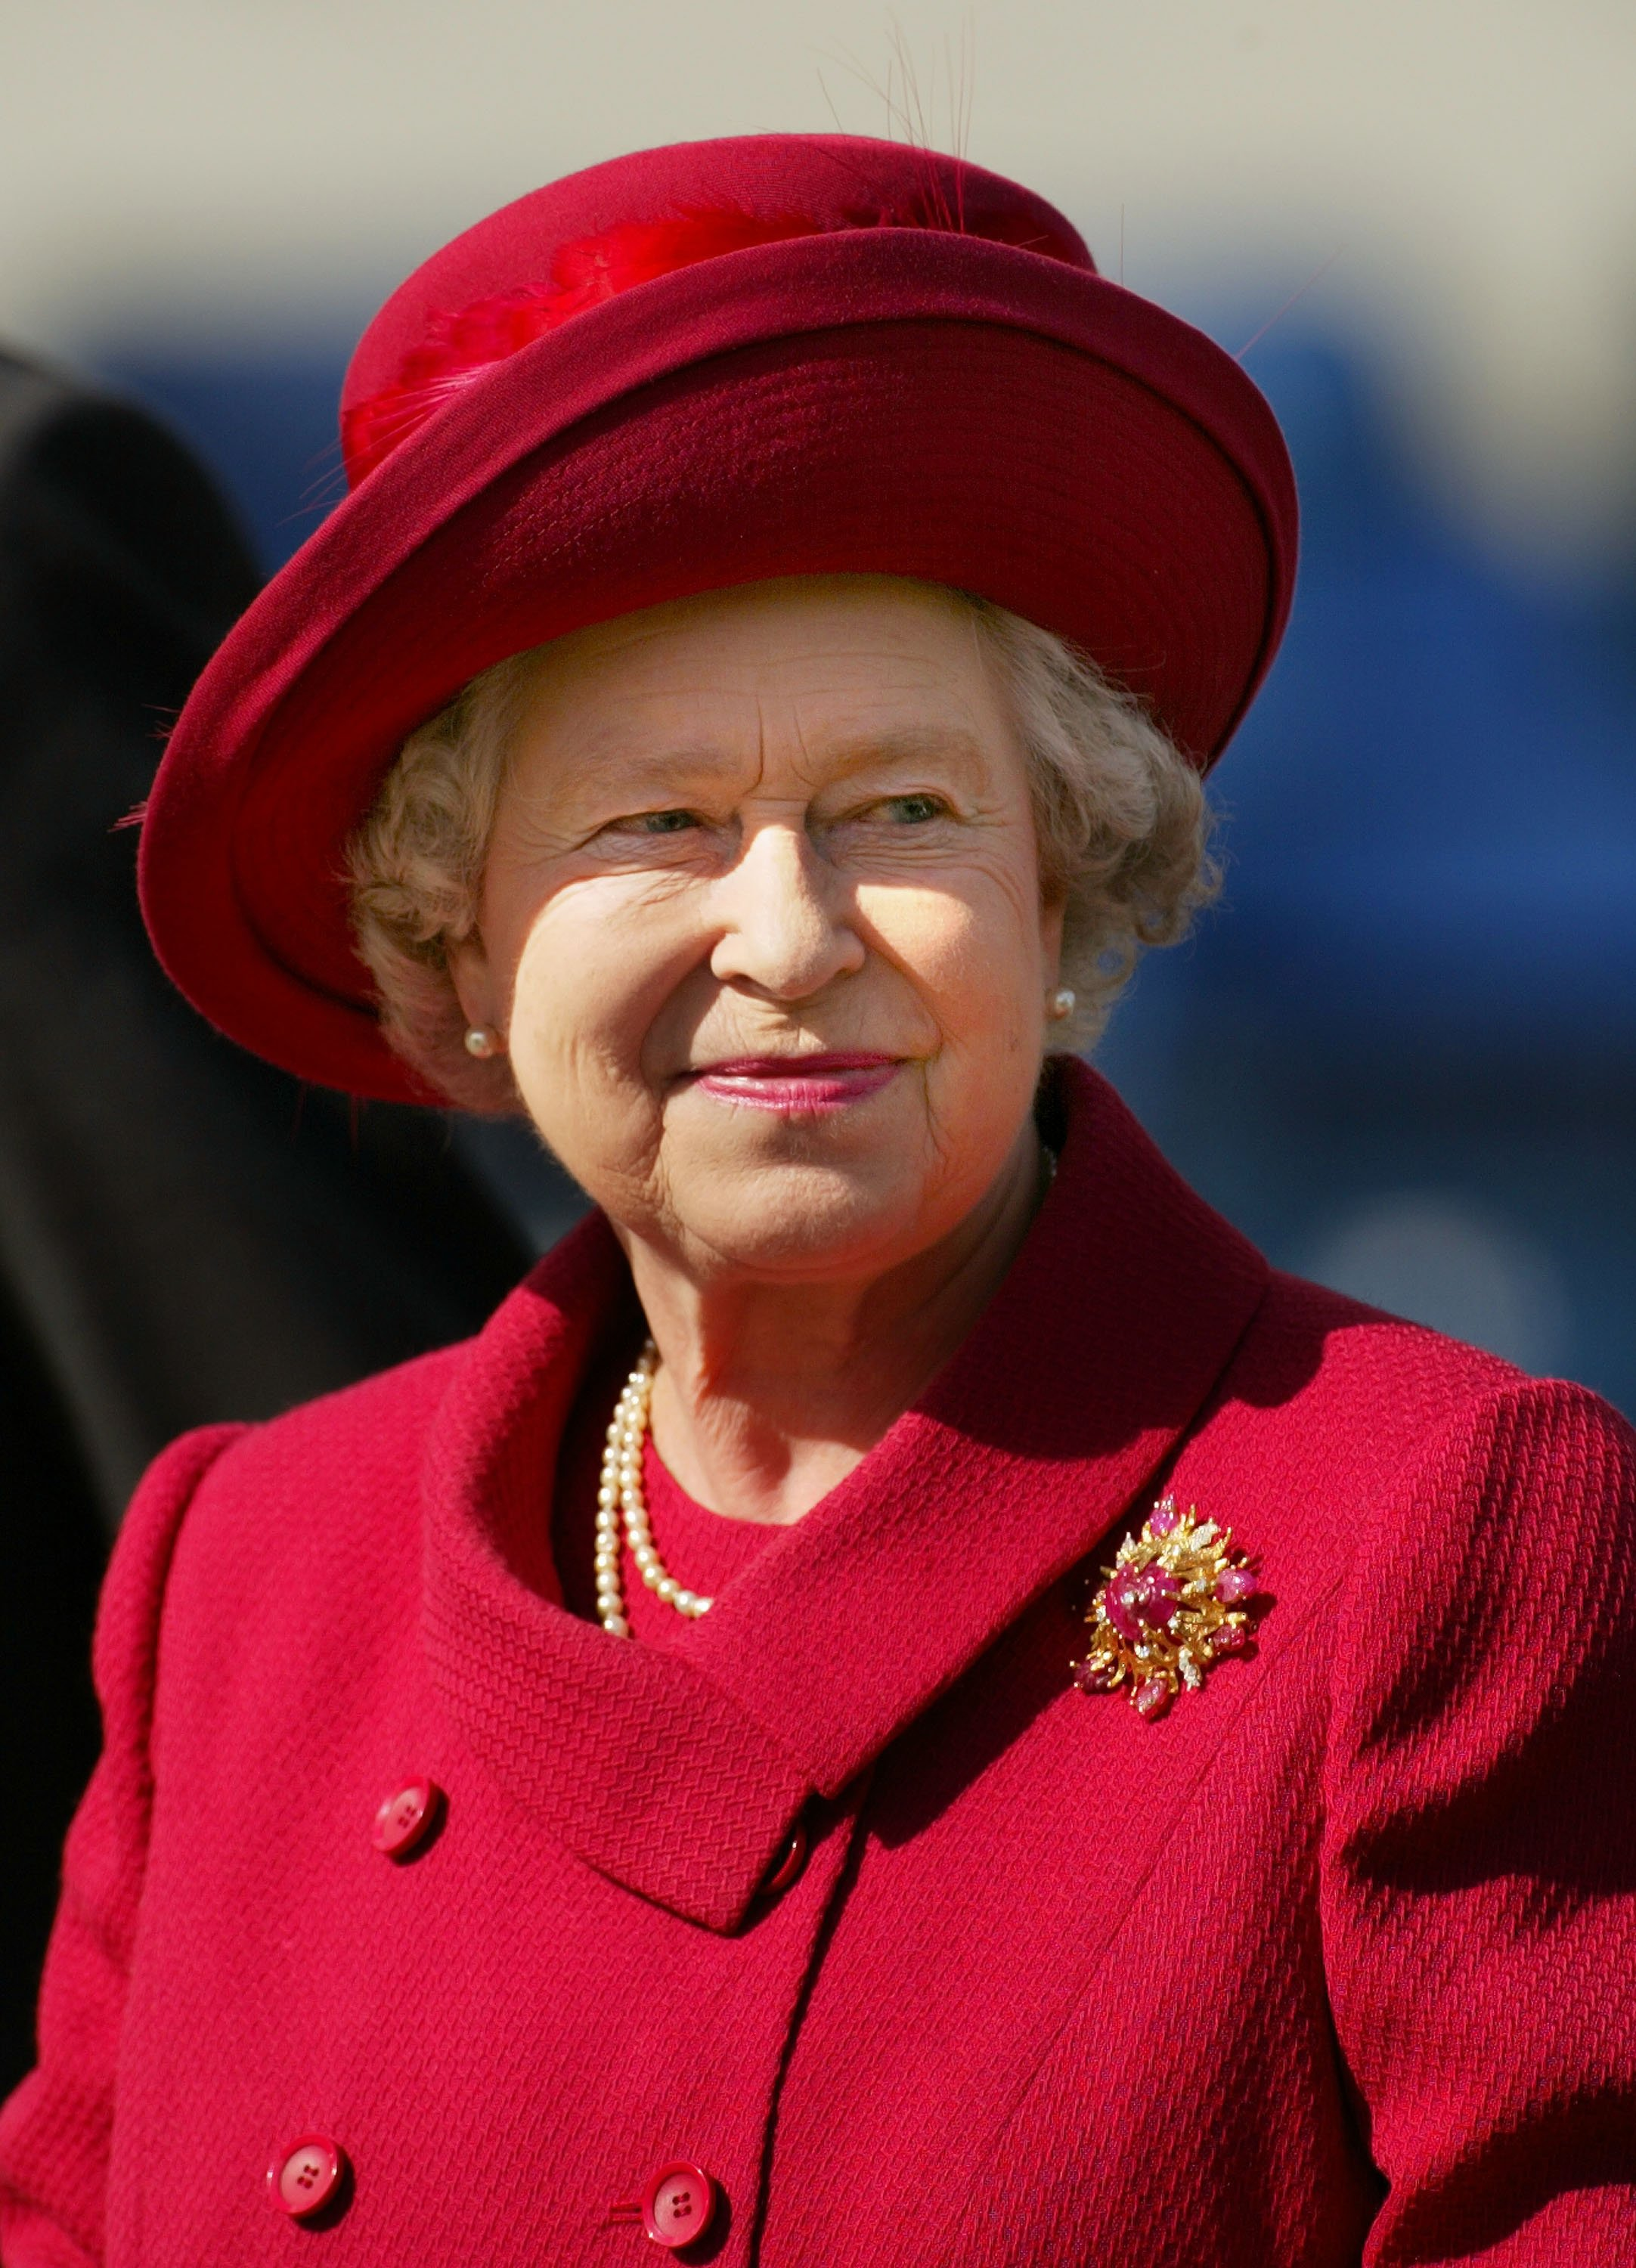 Queen Elizabeth II smiling at The Royal Windsor Horse Show, 2002, Windsor Great Park, England. | Photo: Getty Images